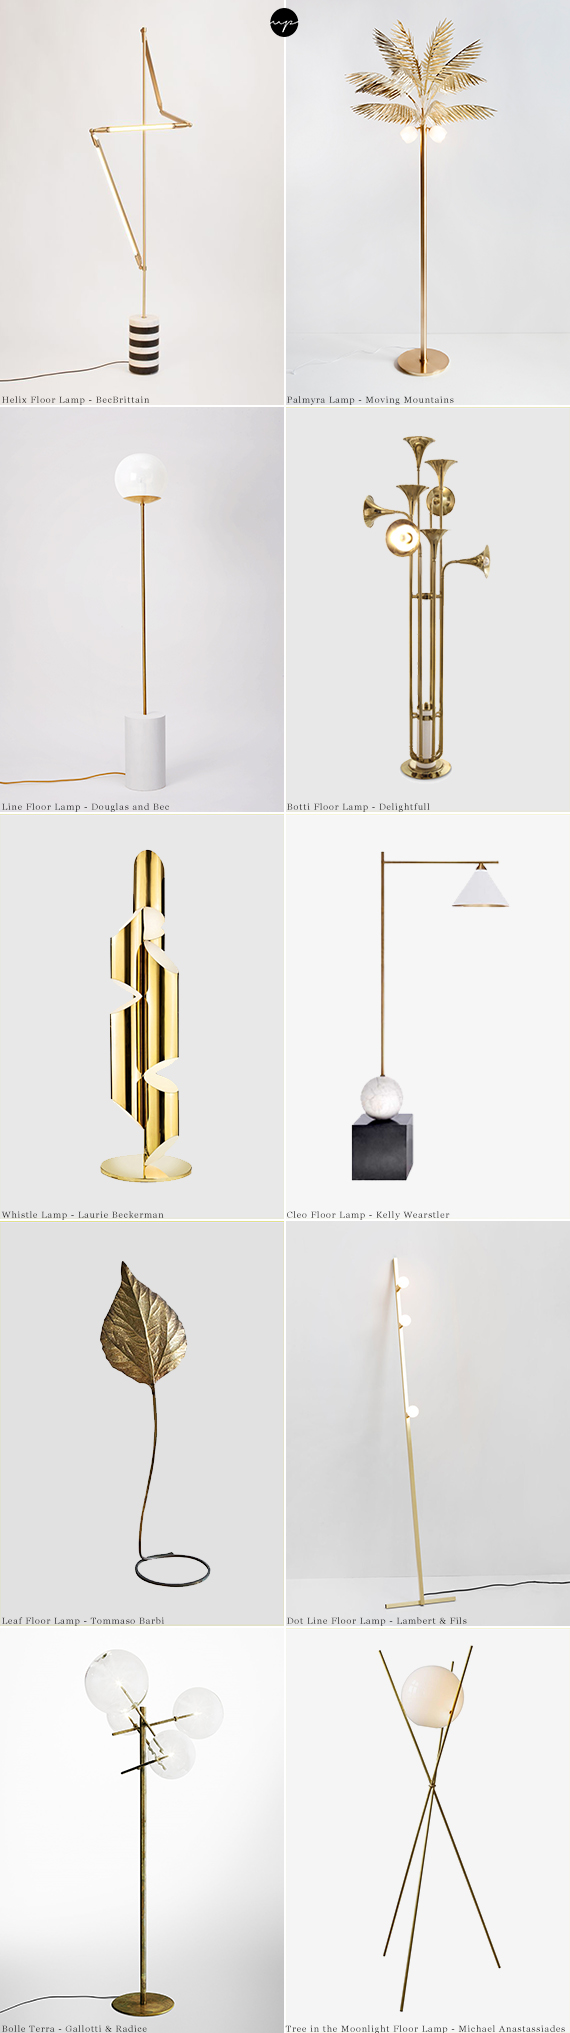 10 breathtaking sculptural floor lamps | My Paradissi